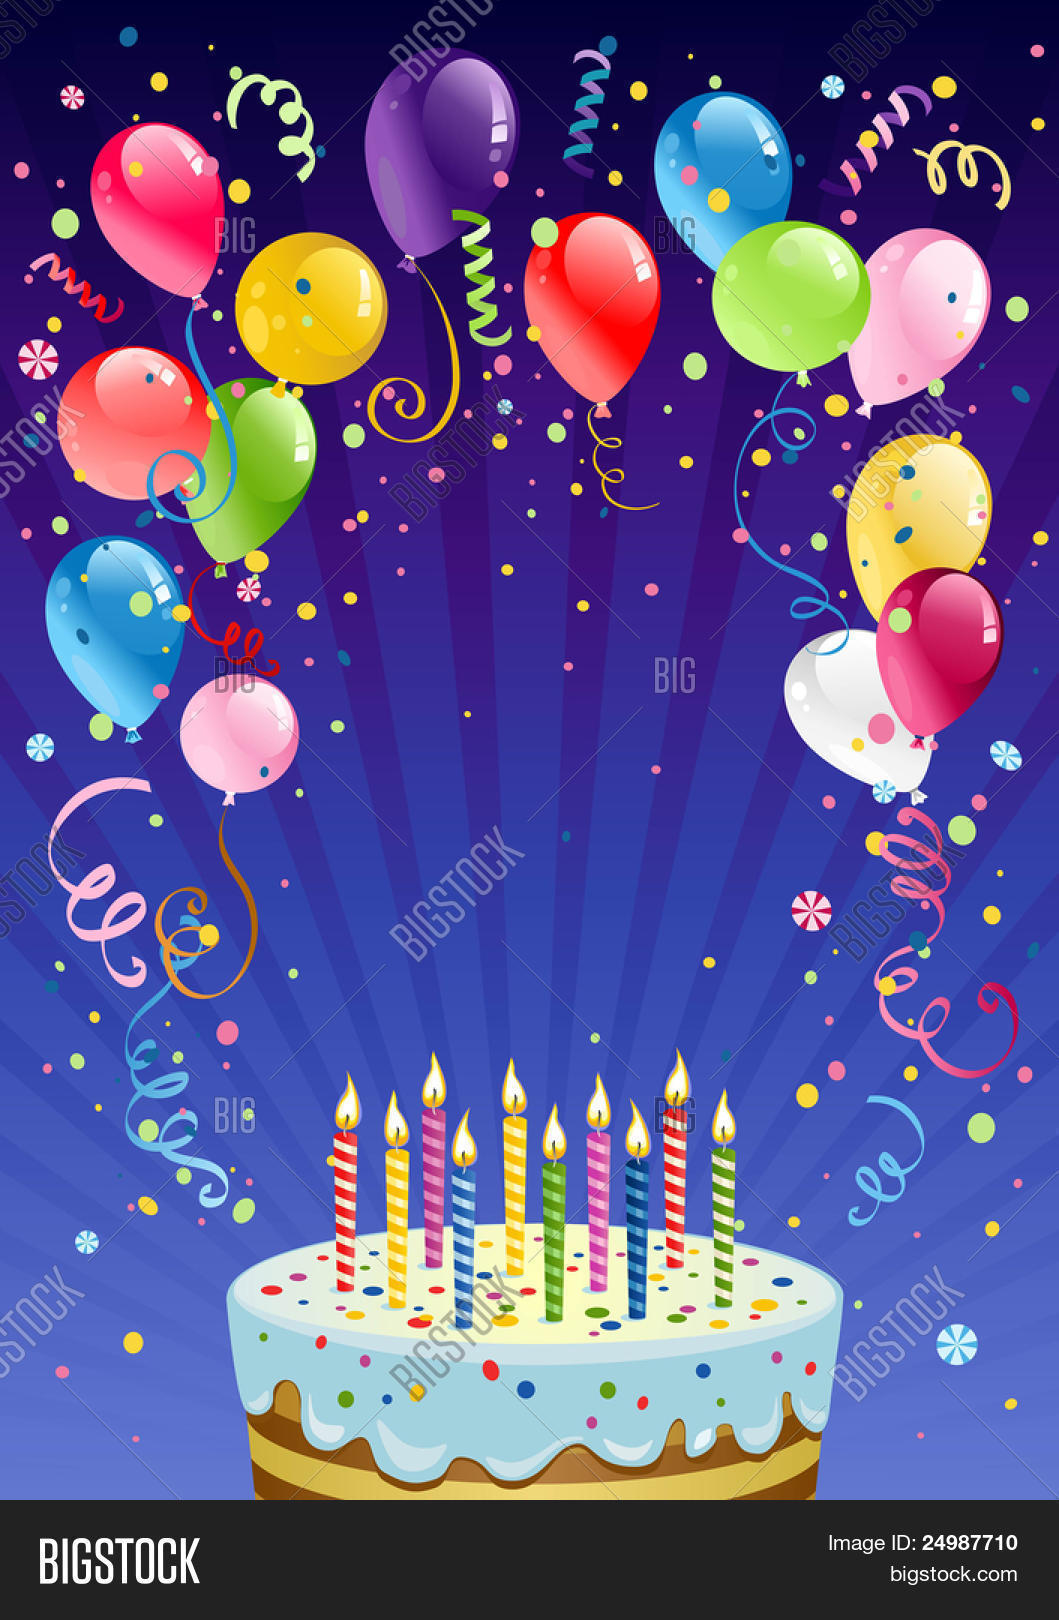 birthday background images Birthday Background Vector & Photo (Free Trial) | Bigstock birthday background images